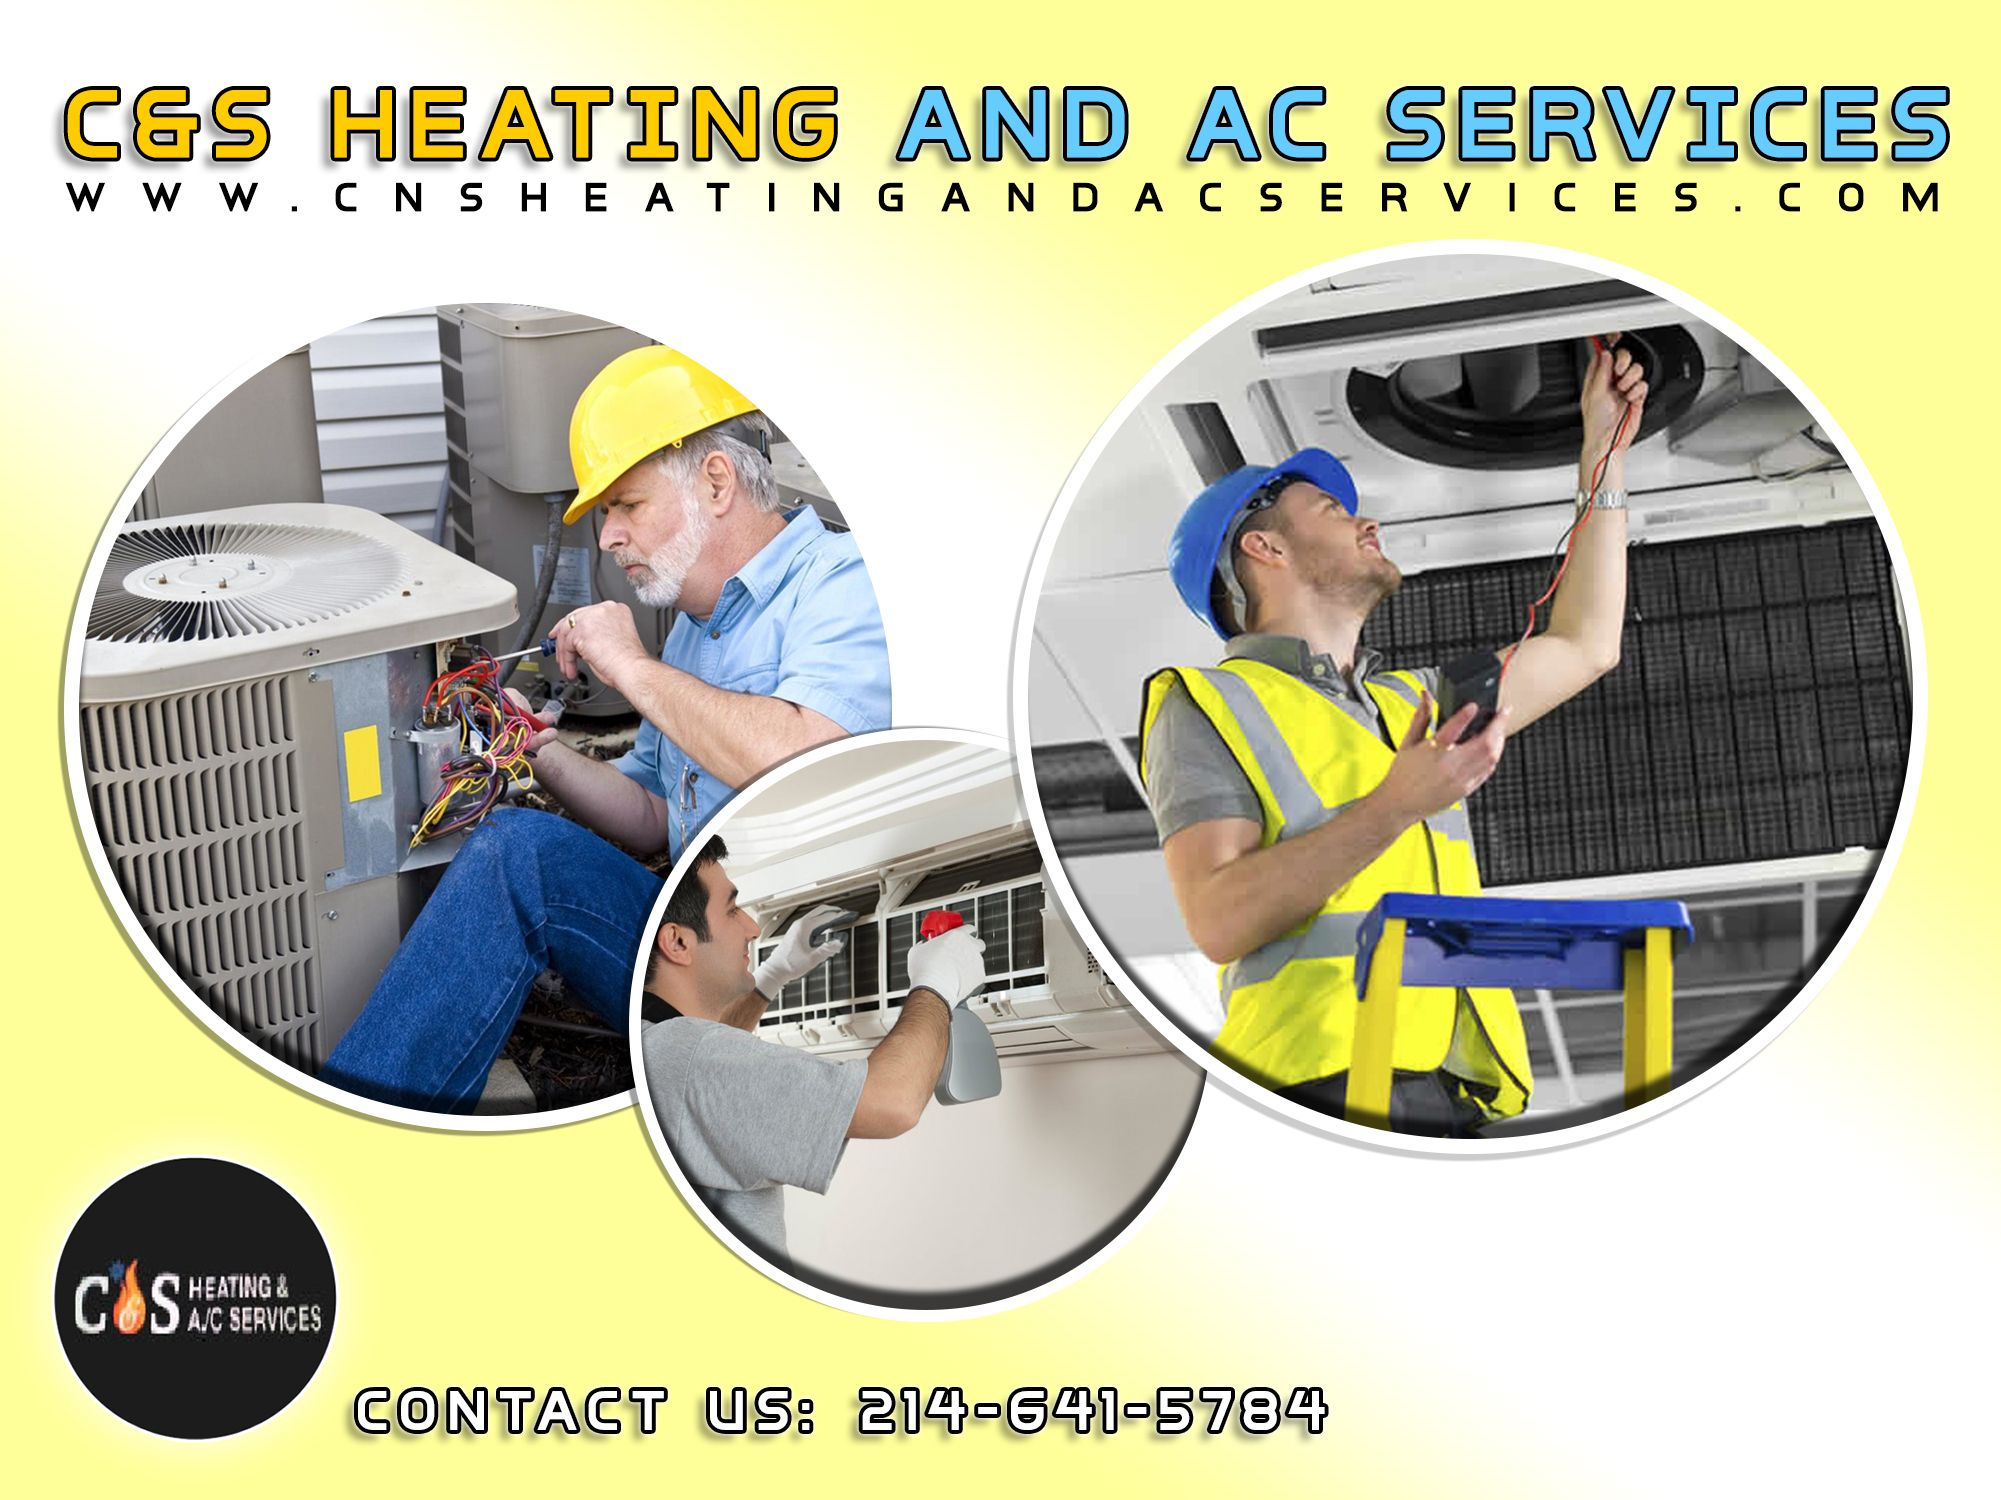 C S Heating And Ac Services Proudly Offer Air Condition Heating And Indoor Air Quality Service And Installation T Hvac Services Ac Service Ac Repair Services